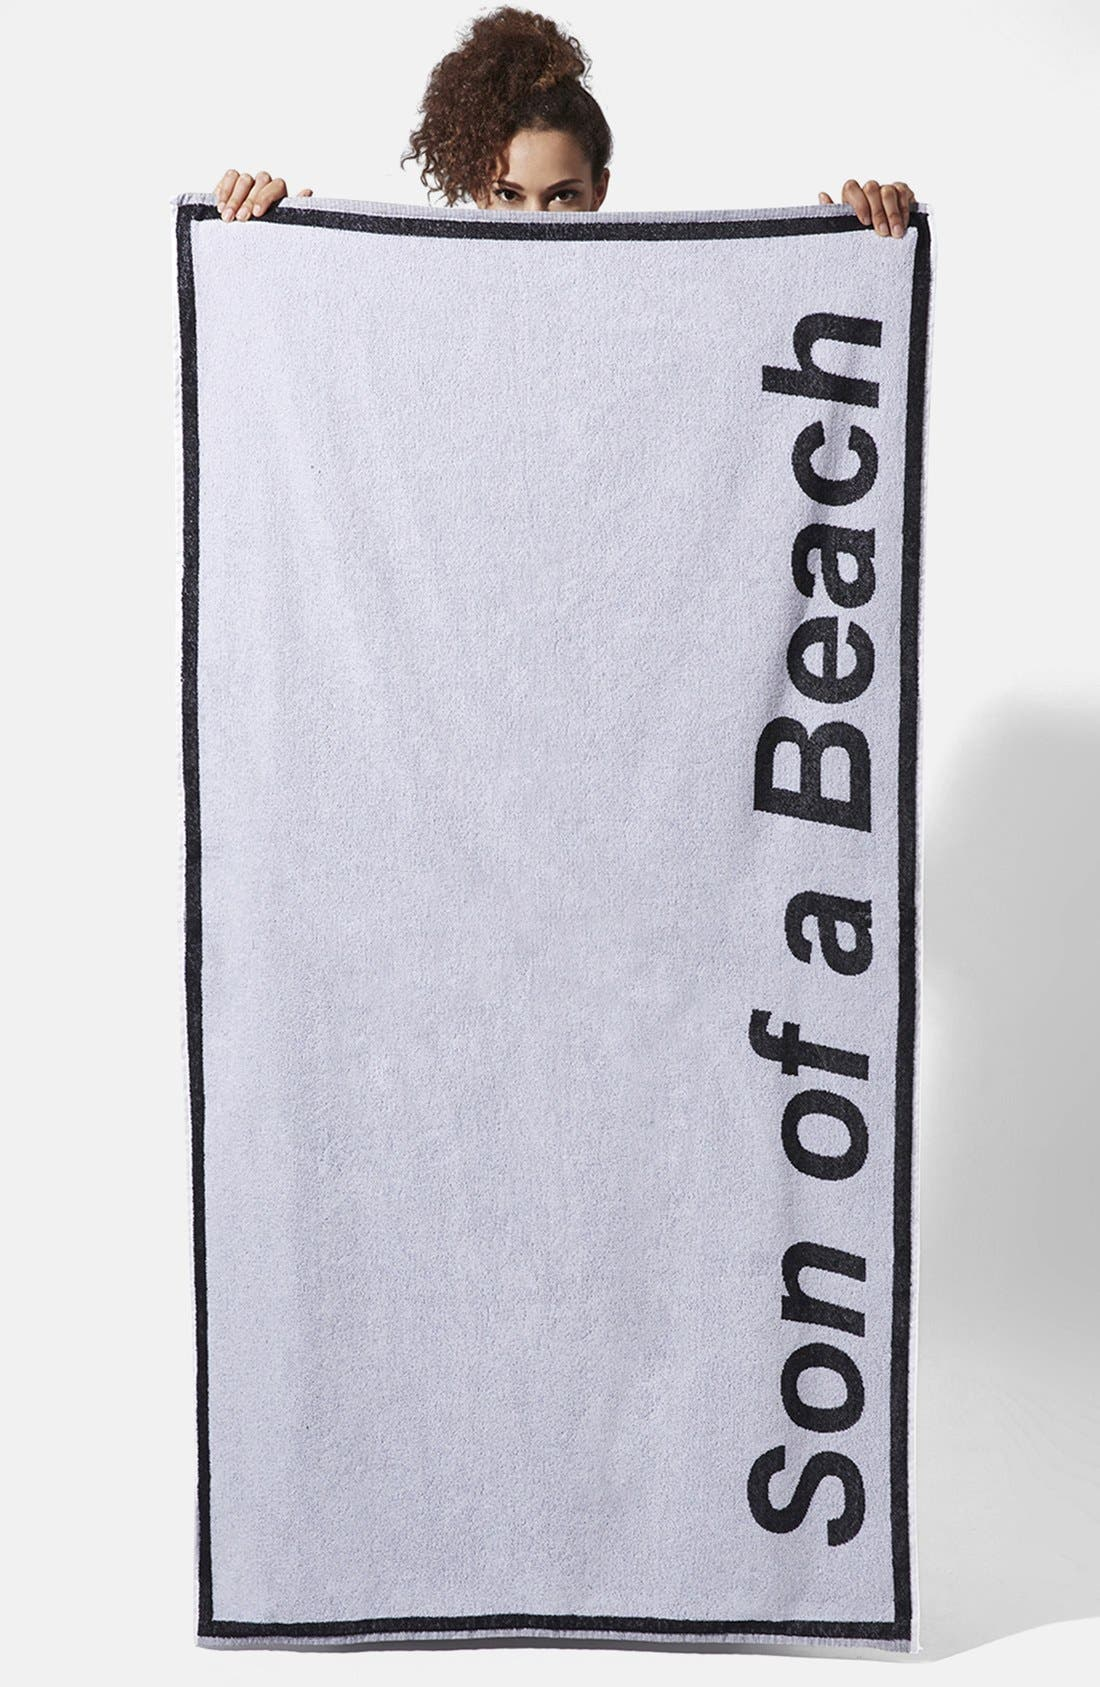 Alternate Image 1 Selected - Ashish x Topshop 'Son of a Beach' Towel